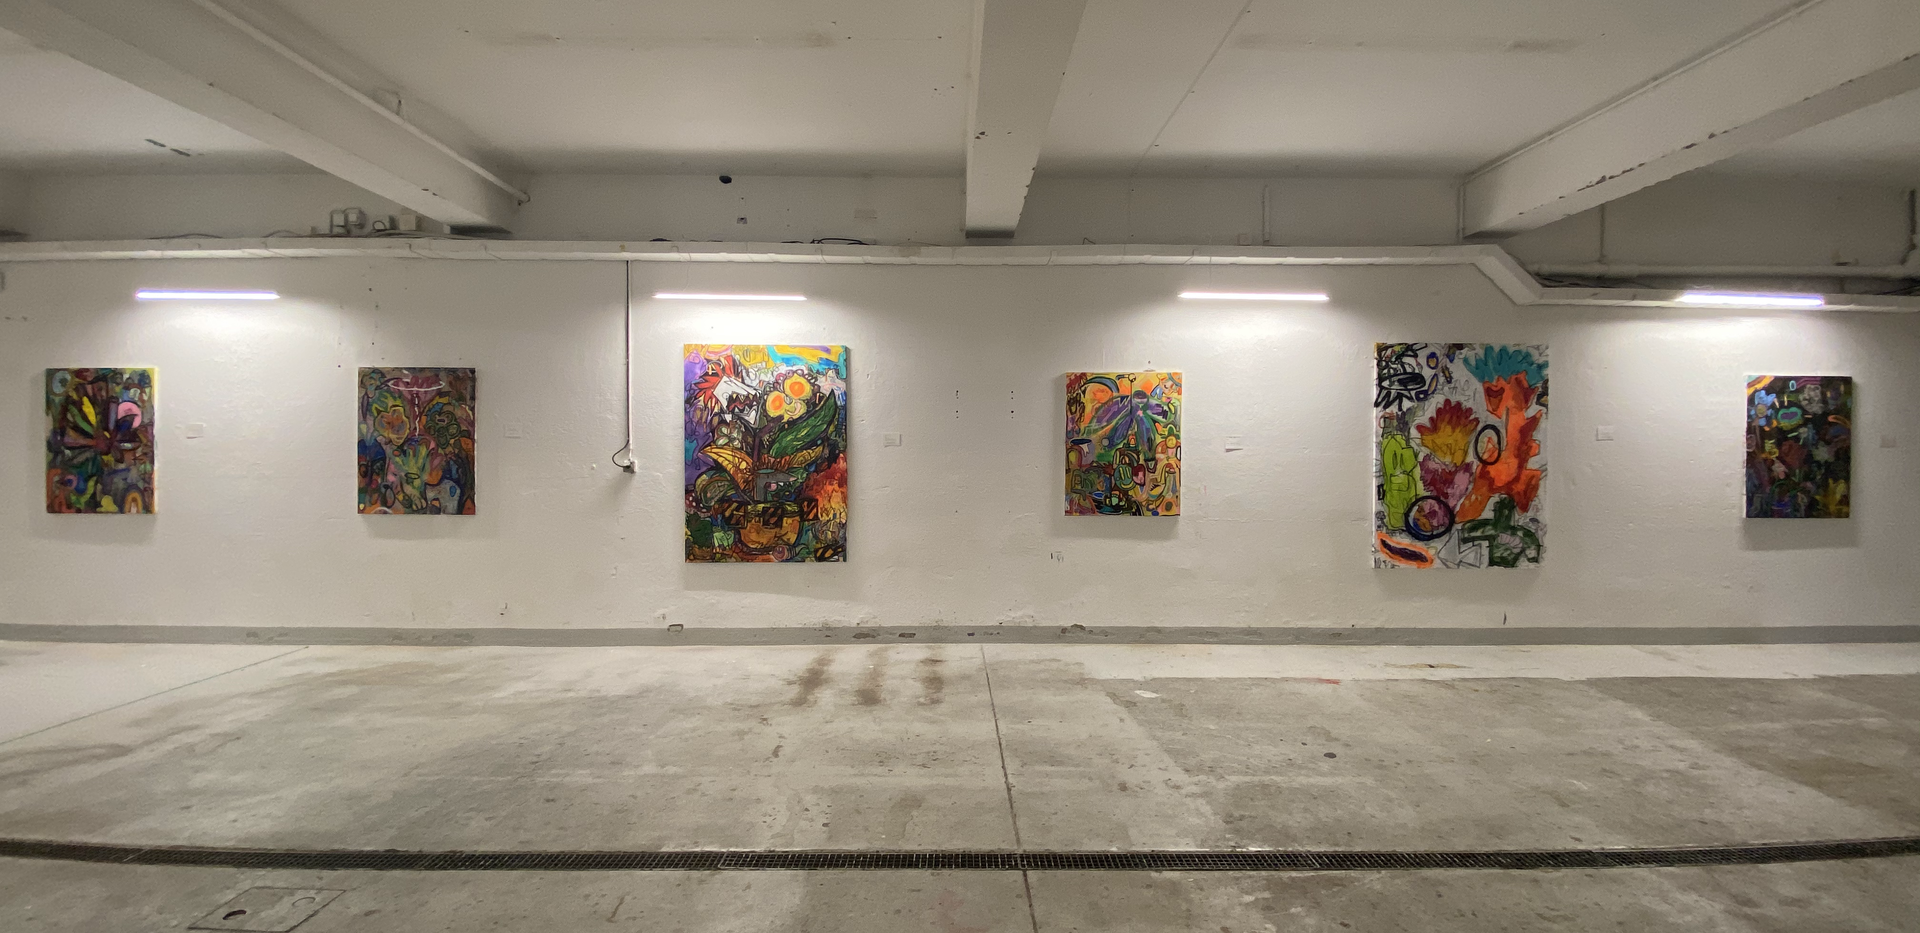 Orlando Marosini | Solo Show No Rulez | September 2020